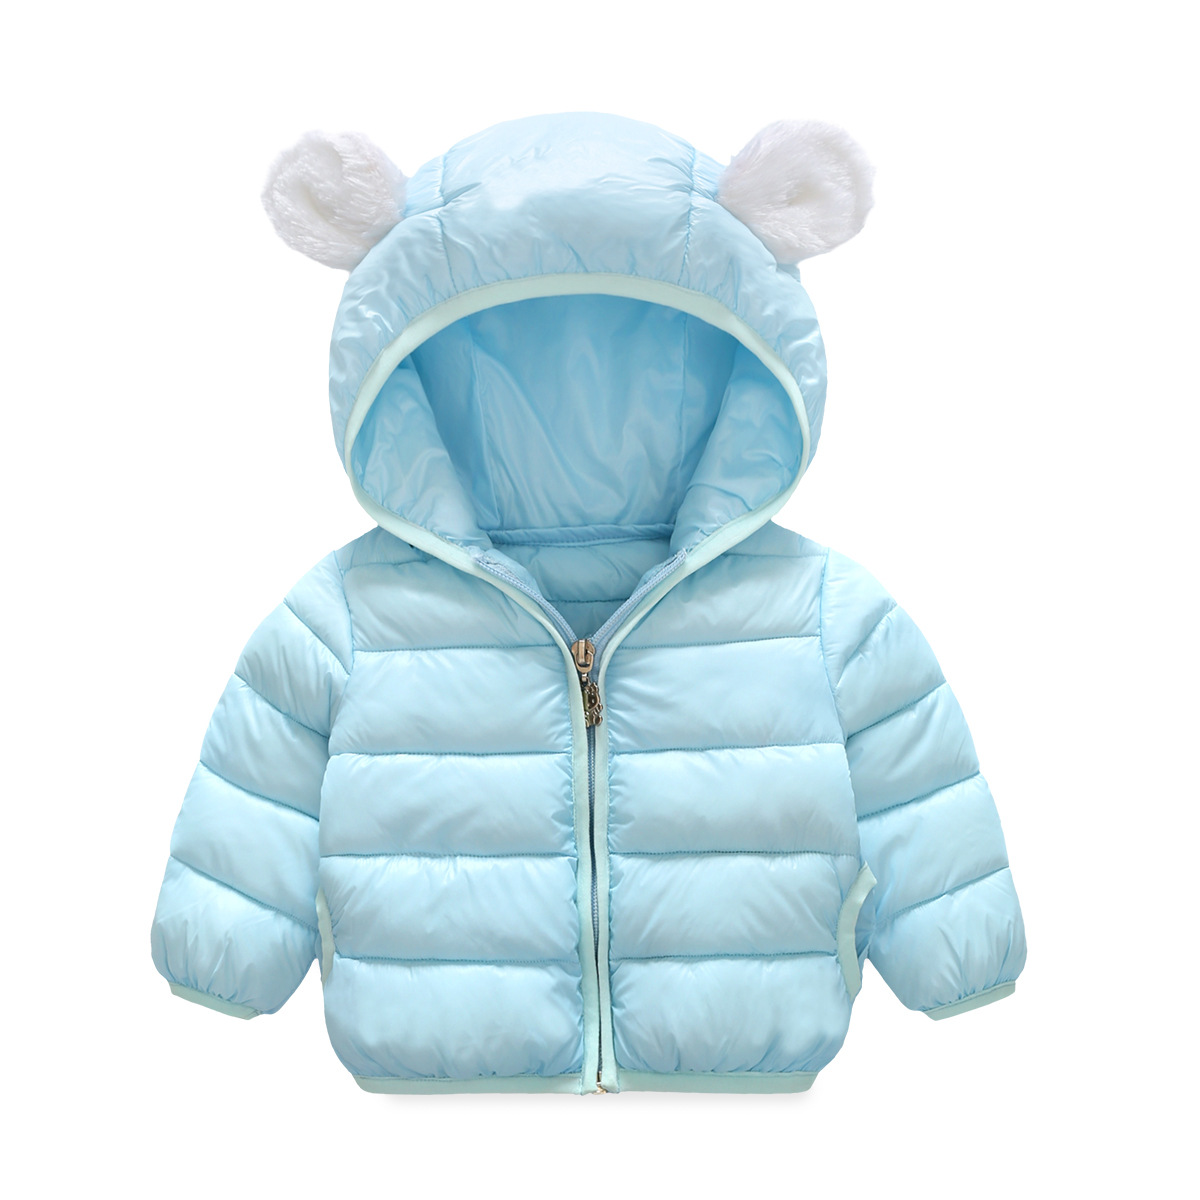 2017 New Girls Coats Autumn Winter Baby Girls Cotton Outerwear Children Cotton-padded Jackets Warm Girls Hooded Coat for 6M-4Y 9m 4t baby girls 2015 new autumn winter thick wadded coat kids cotton warm hooded jackets children padded outerwear